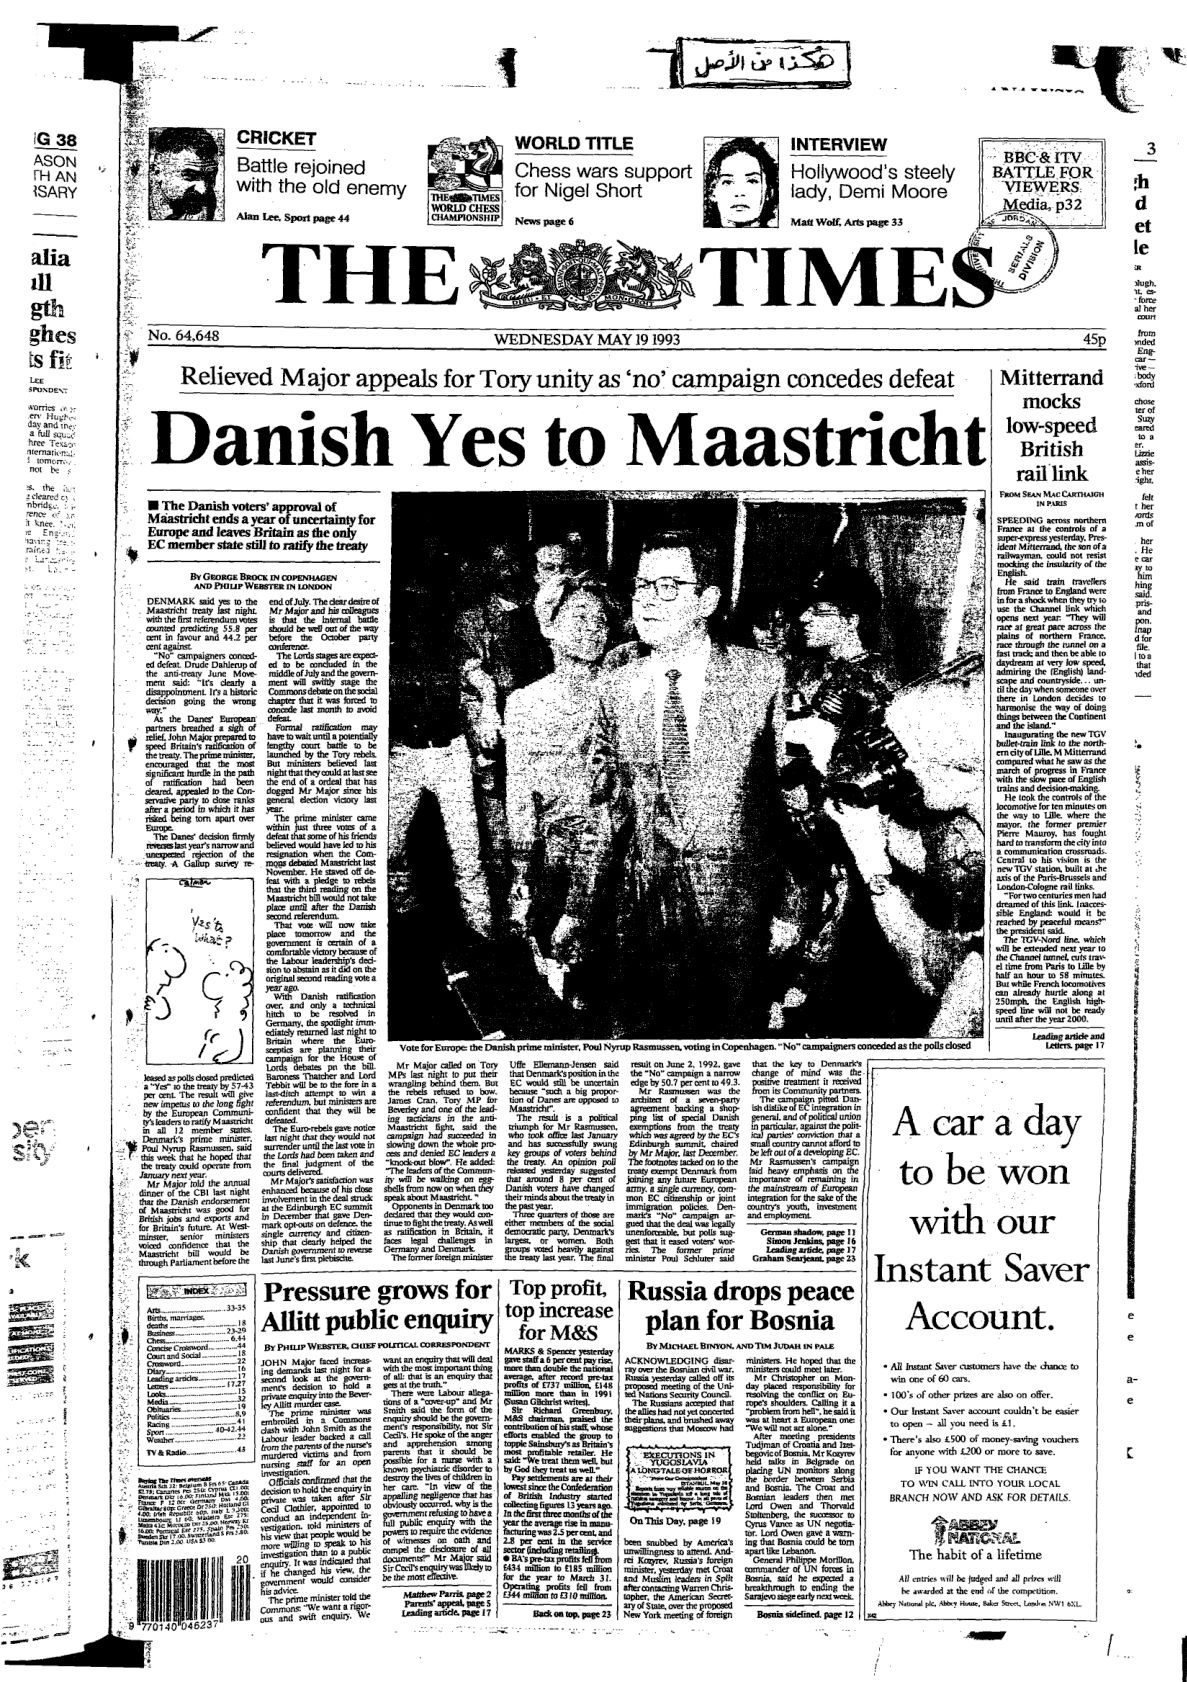 The Times Issue No. 64648. 1993-05-19, UK